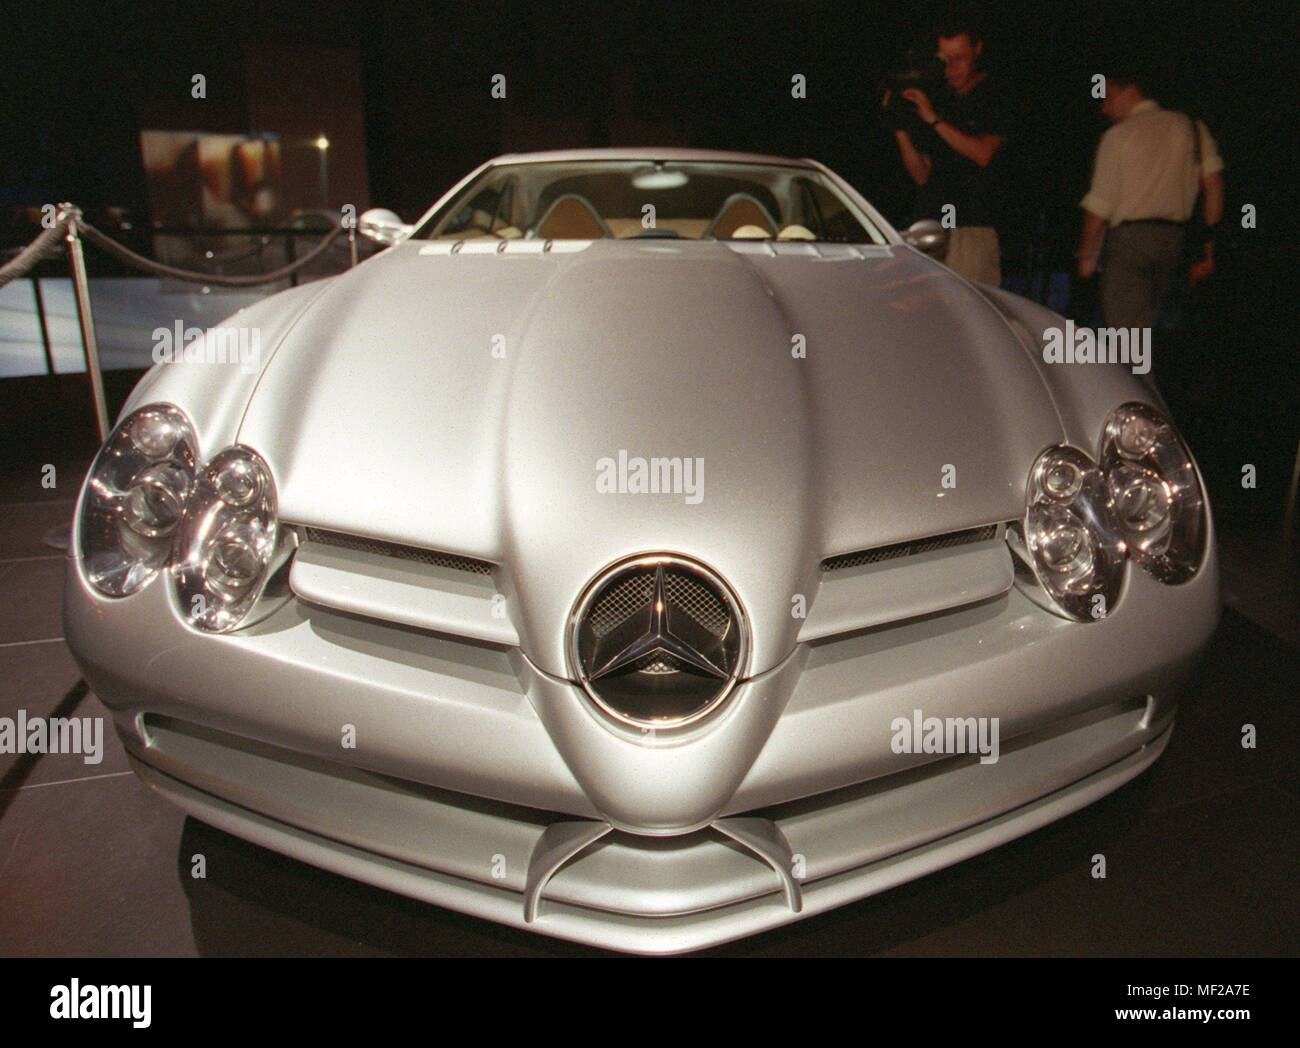 Mercedes presents a new study of the Super sports car Vision SLR at the International Motor Show (IAA) in Frankfurt on 14.9.1999. As with the coupe, whose series production was already decided in July this year, also has the roadster on the conspicuous, elongated bonnet, flared fender and Flugelturen. The Roadster is more than a 'show car', he gives a realistic taste of tomorrow's Mercedes-Benz sports car, said Professor Jurgen Hubbert, management member of DaimlerChrysler at the presentation of the study. The futuristic roadster is powered by a V8 engine with 410 kW/557 hp. Dawith is said t - Stock Image